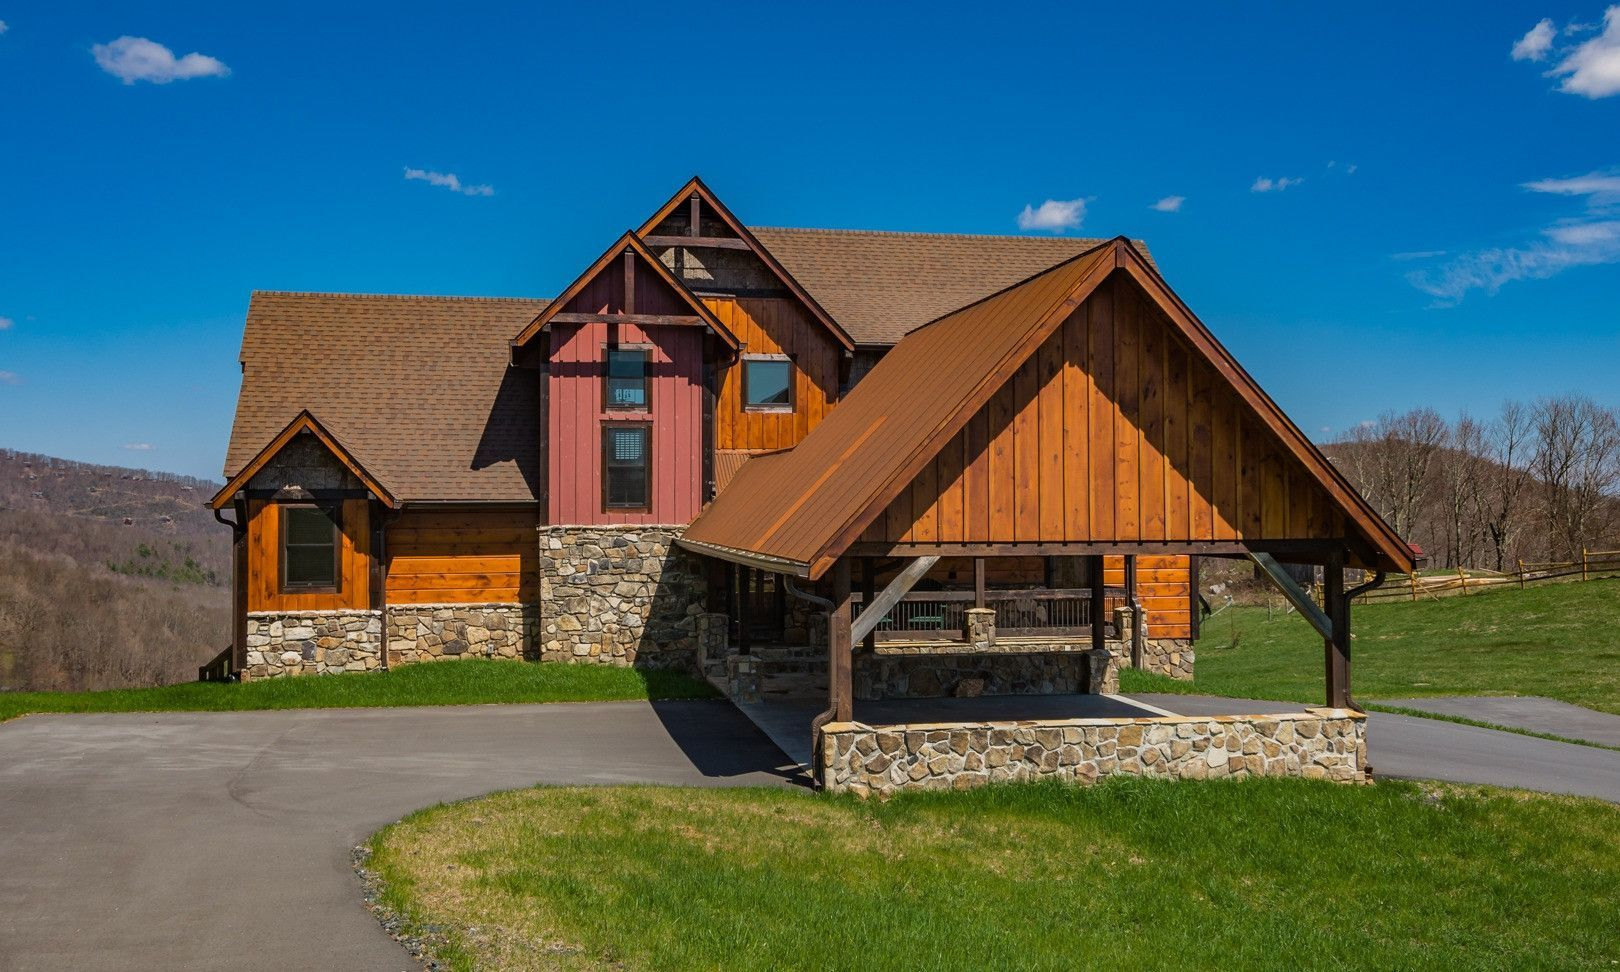 Adirondack mountain home for sale 3bedrooms 5baths 1